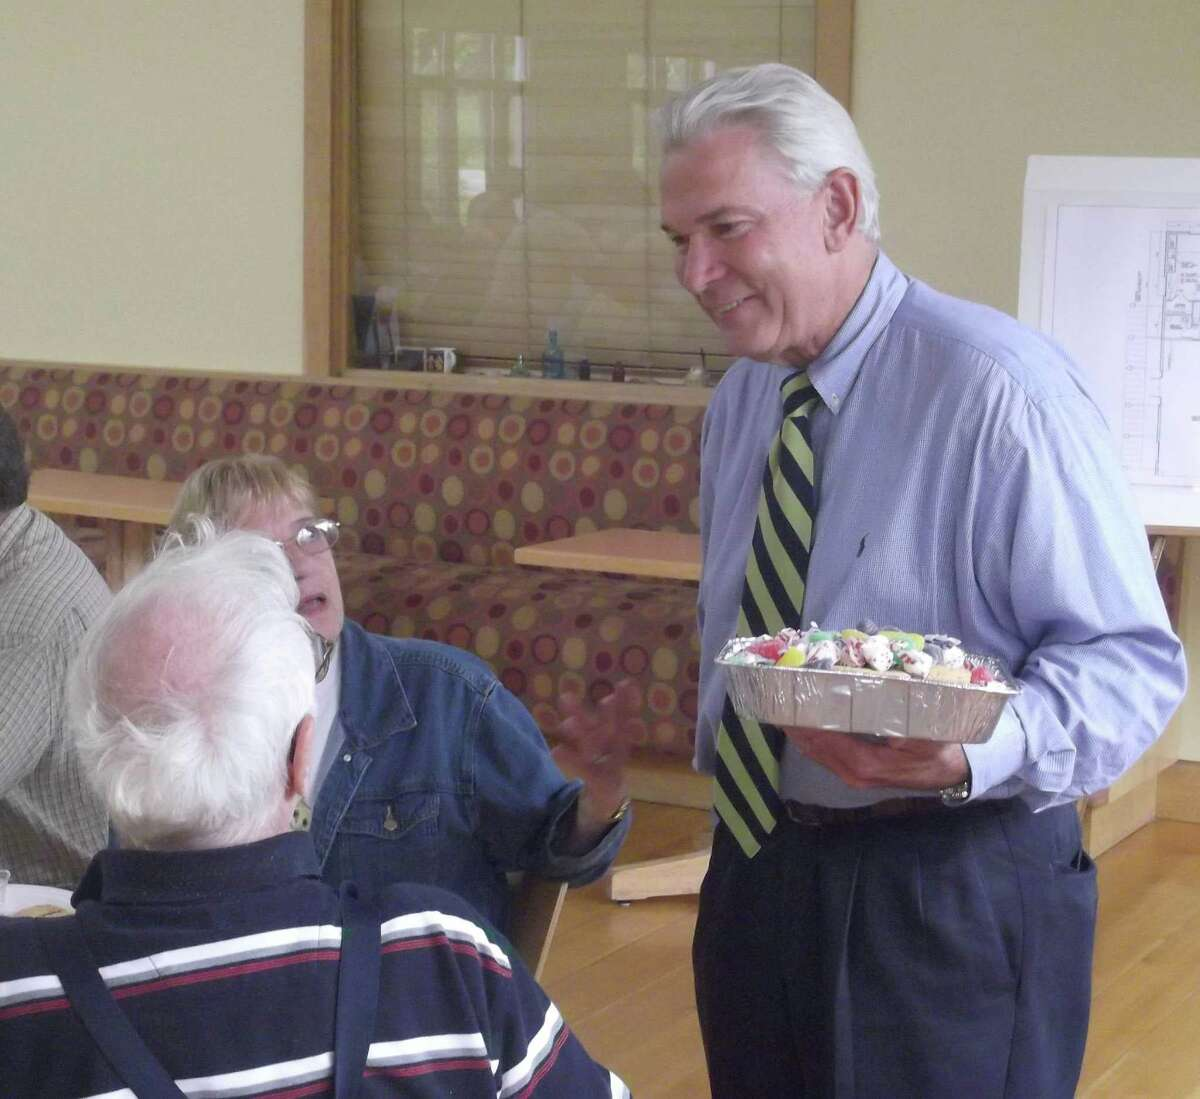 RICKY CAMPBELL/ Register Citizen Litchfield First Selectman Leo Paul, Jr. hands out desserts Thursday during the Park and Recreation Department's annual senior picnic at the Litchfield Community Center. On hand also included Park and Rec Director Brent